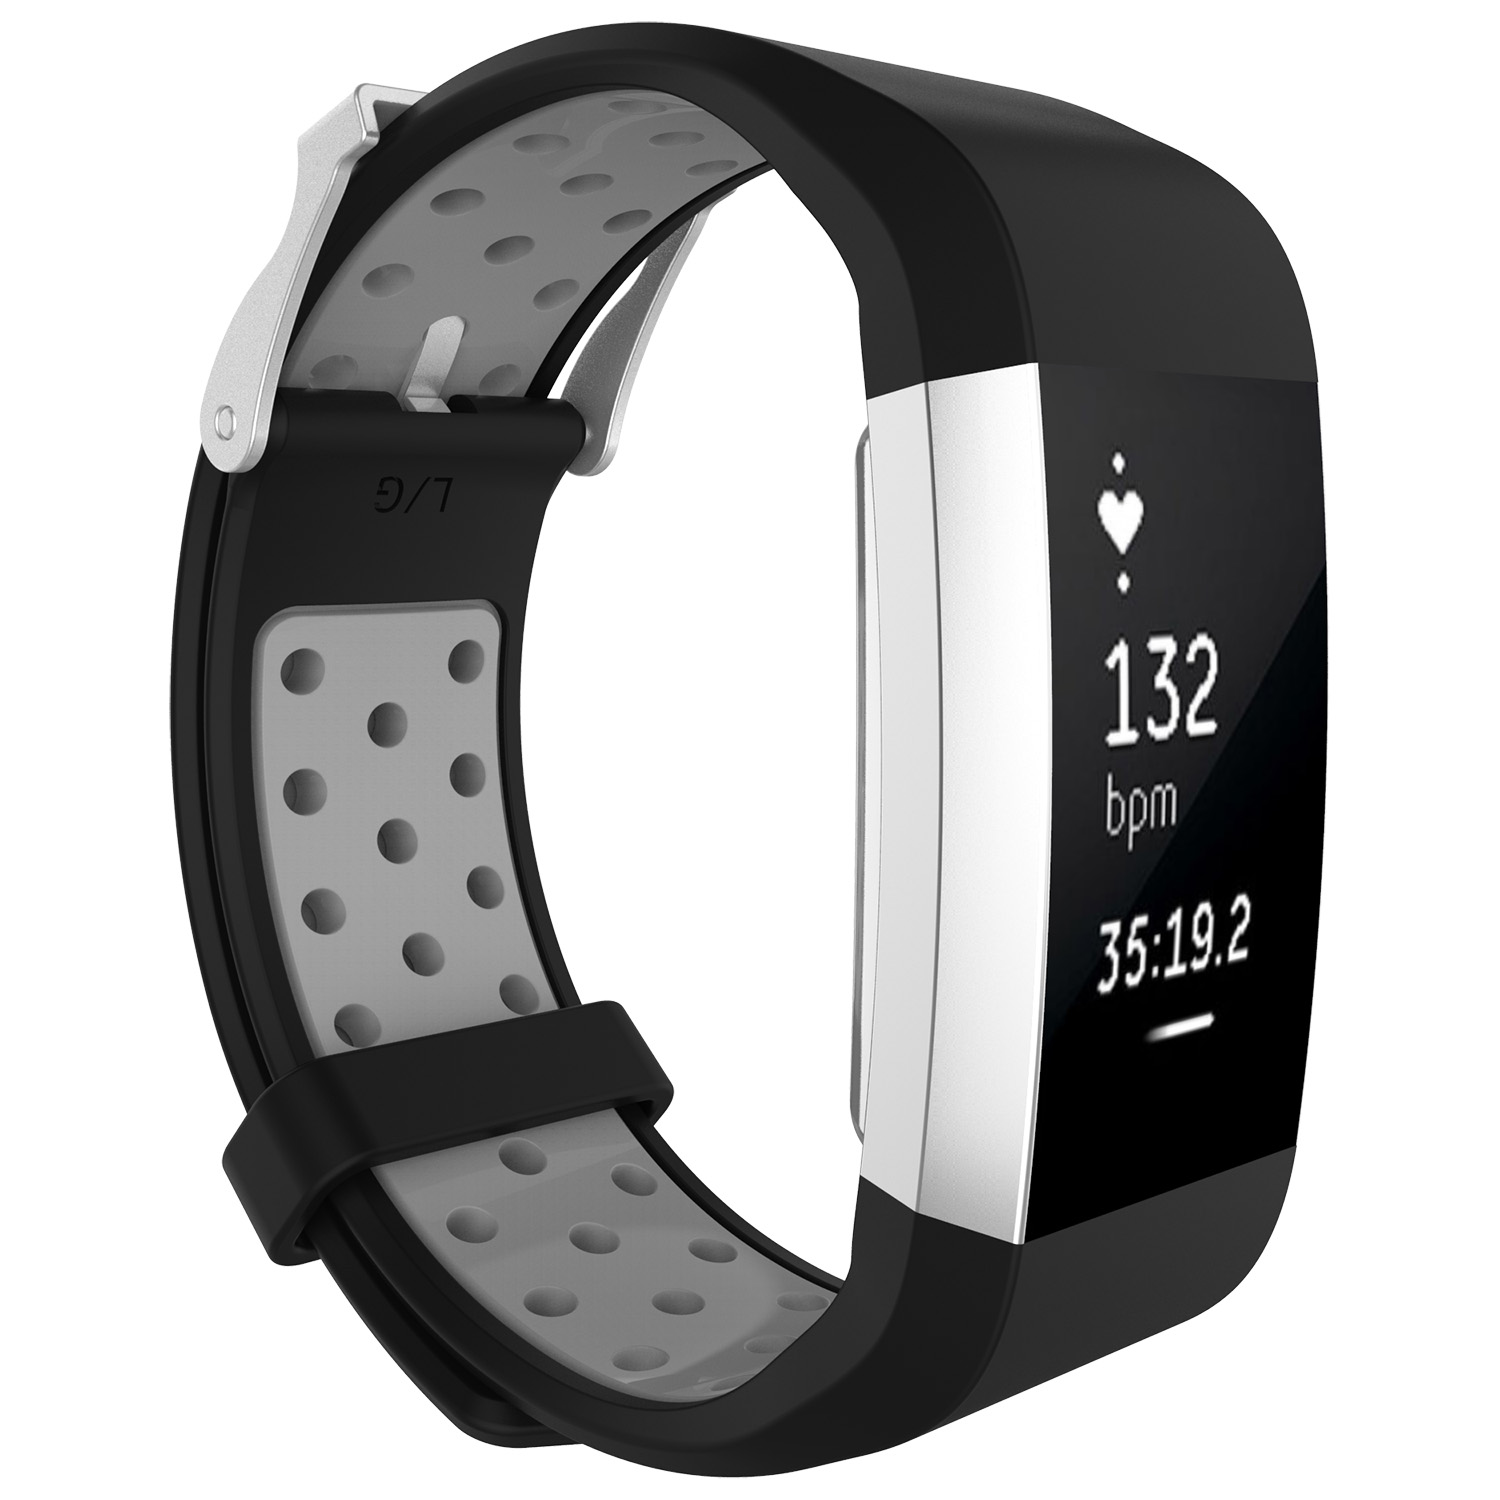 Replacement-Silicone-Wristband-Watch-Strap-Bands-Bracelet-For-Fitbit-Charge-2 thumbnail 84